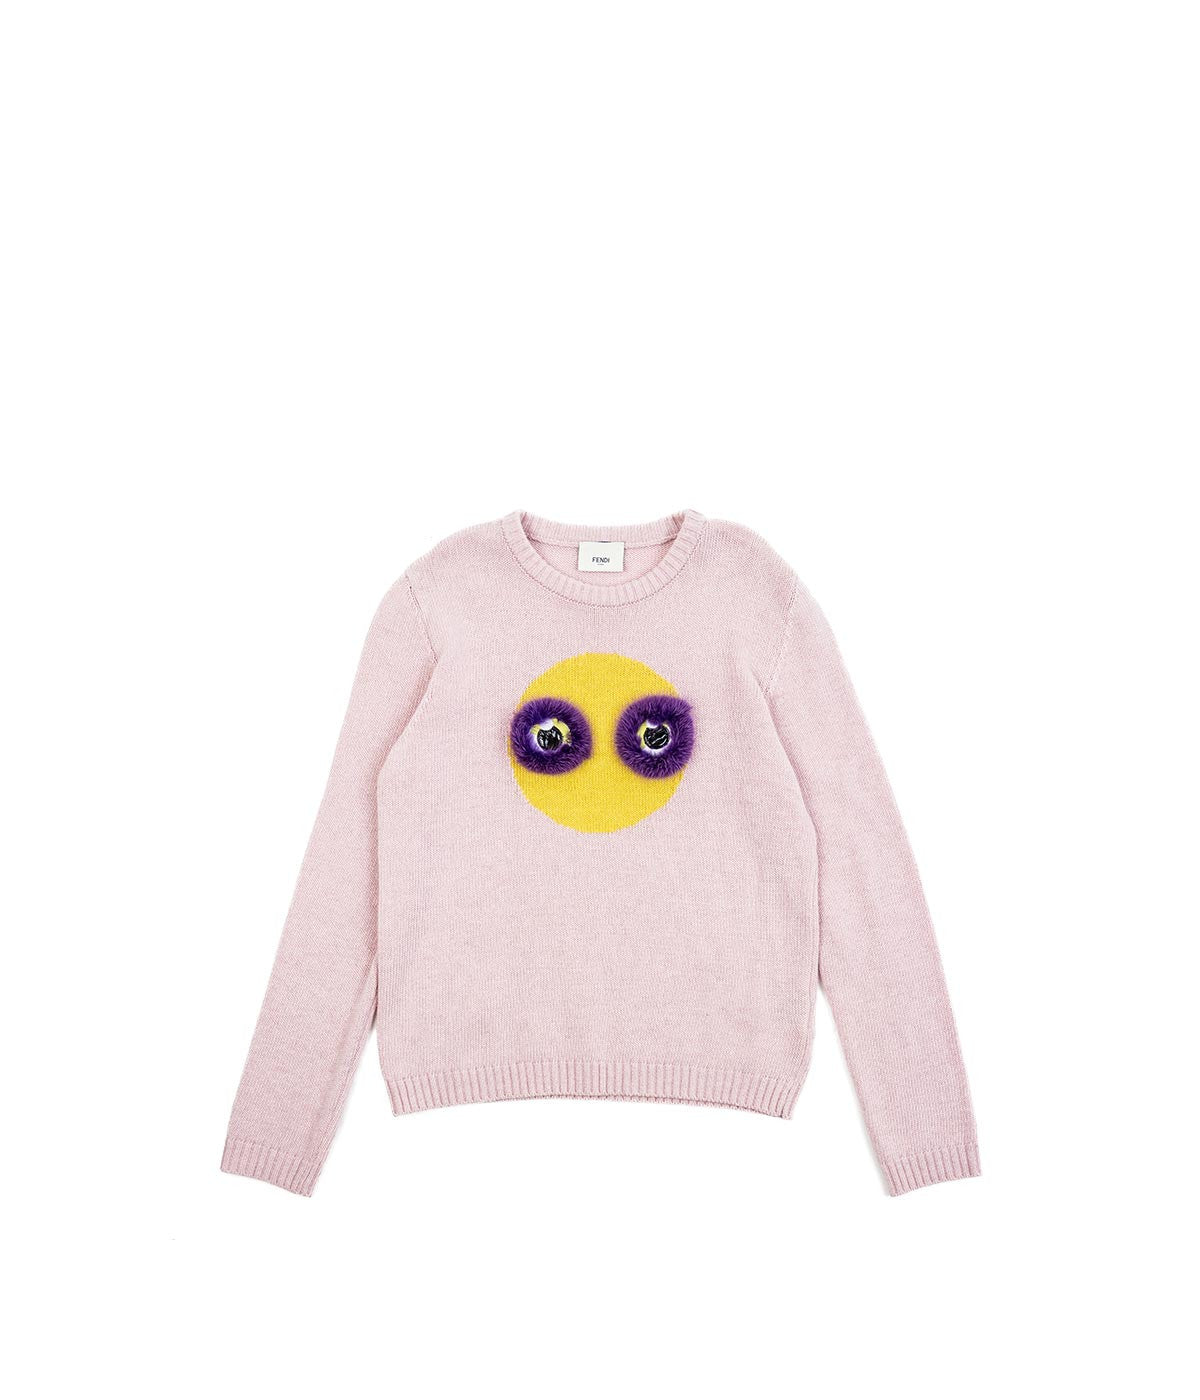 Kids Pink Knit Sweater